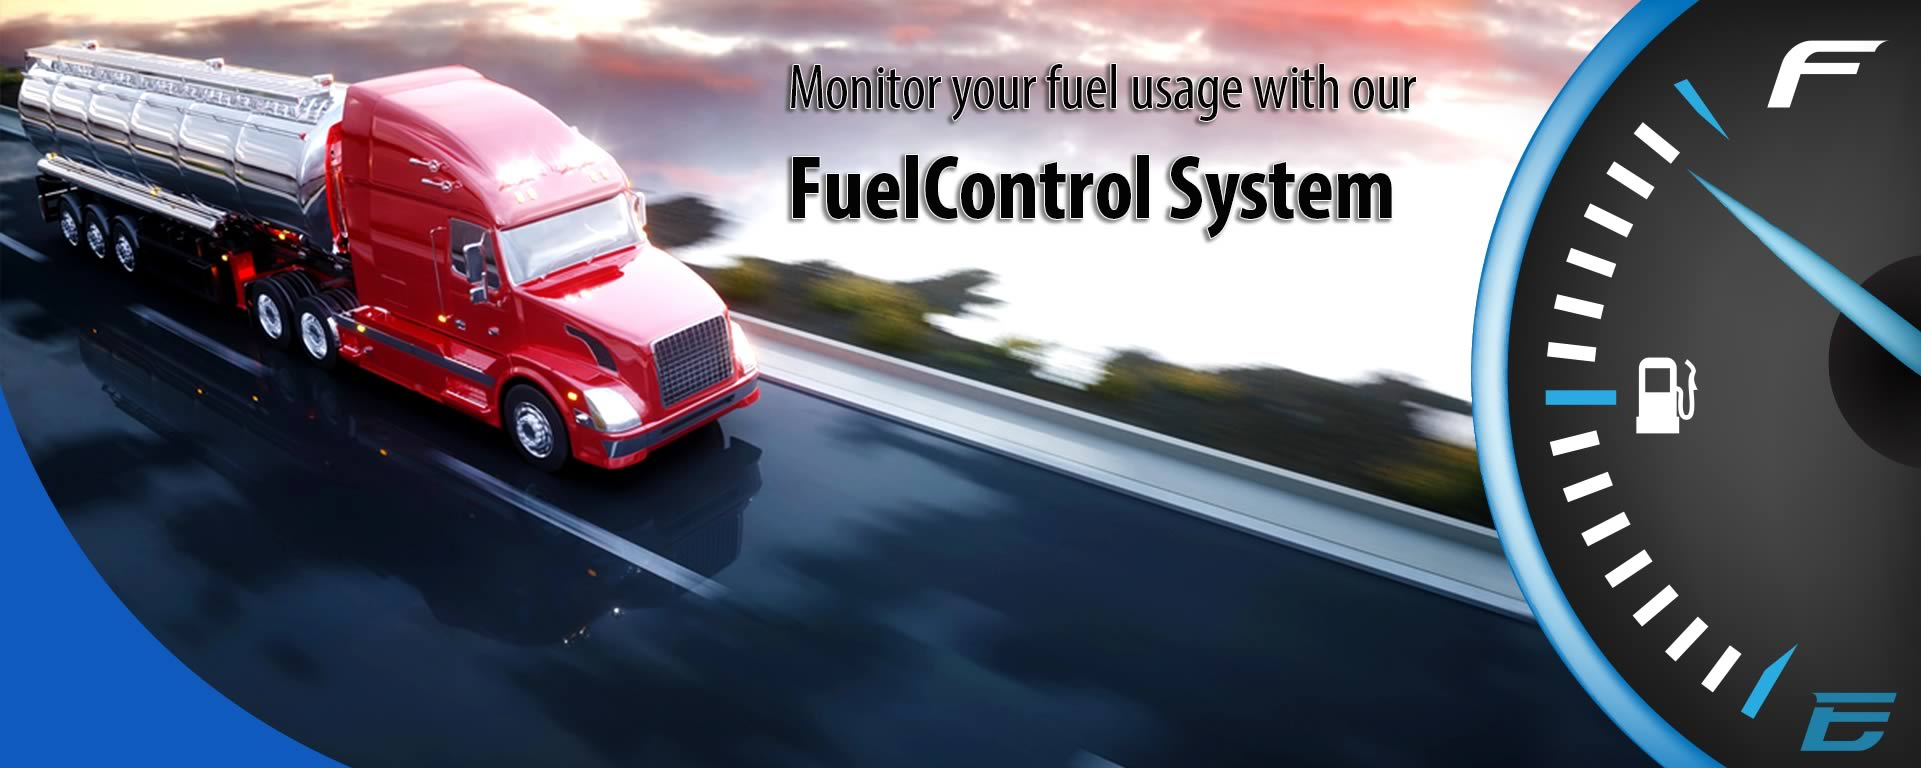 FuelControl System Banner